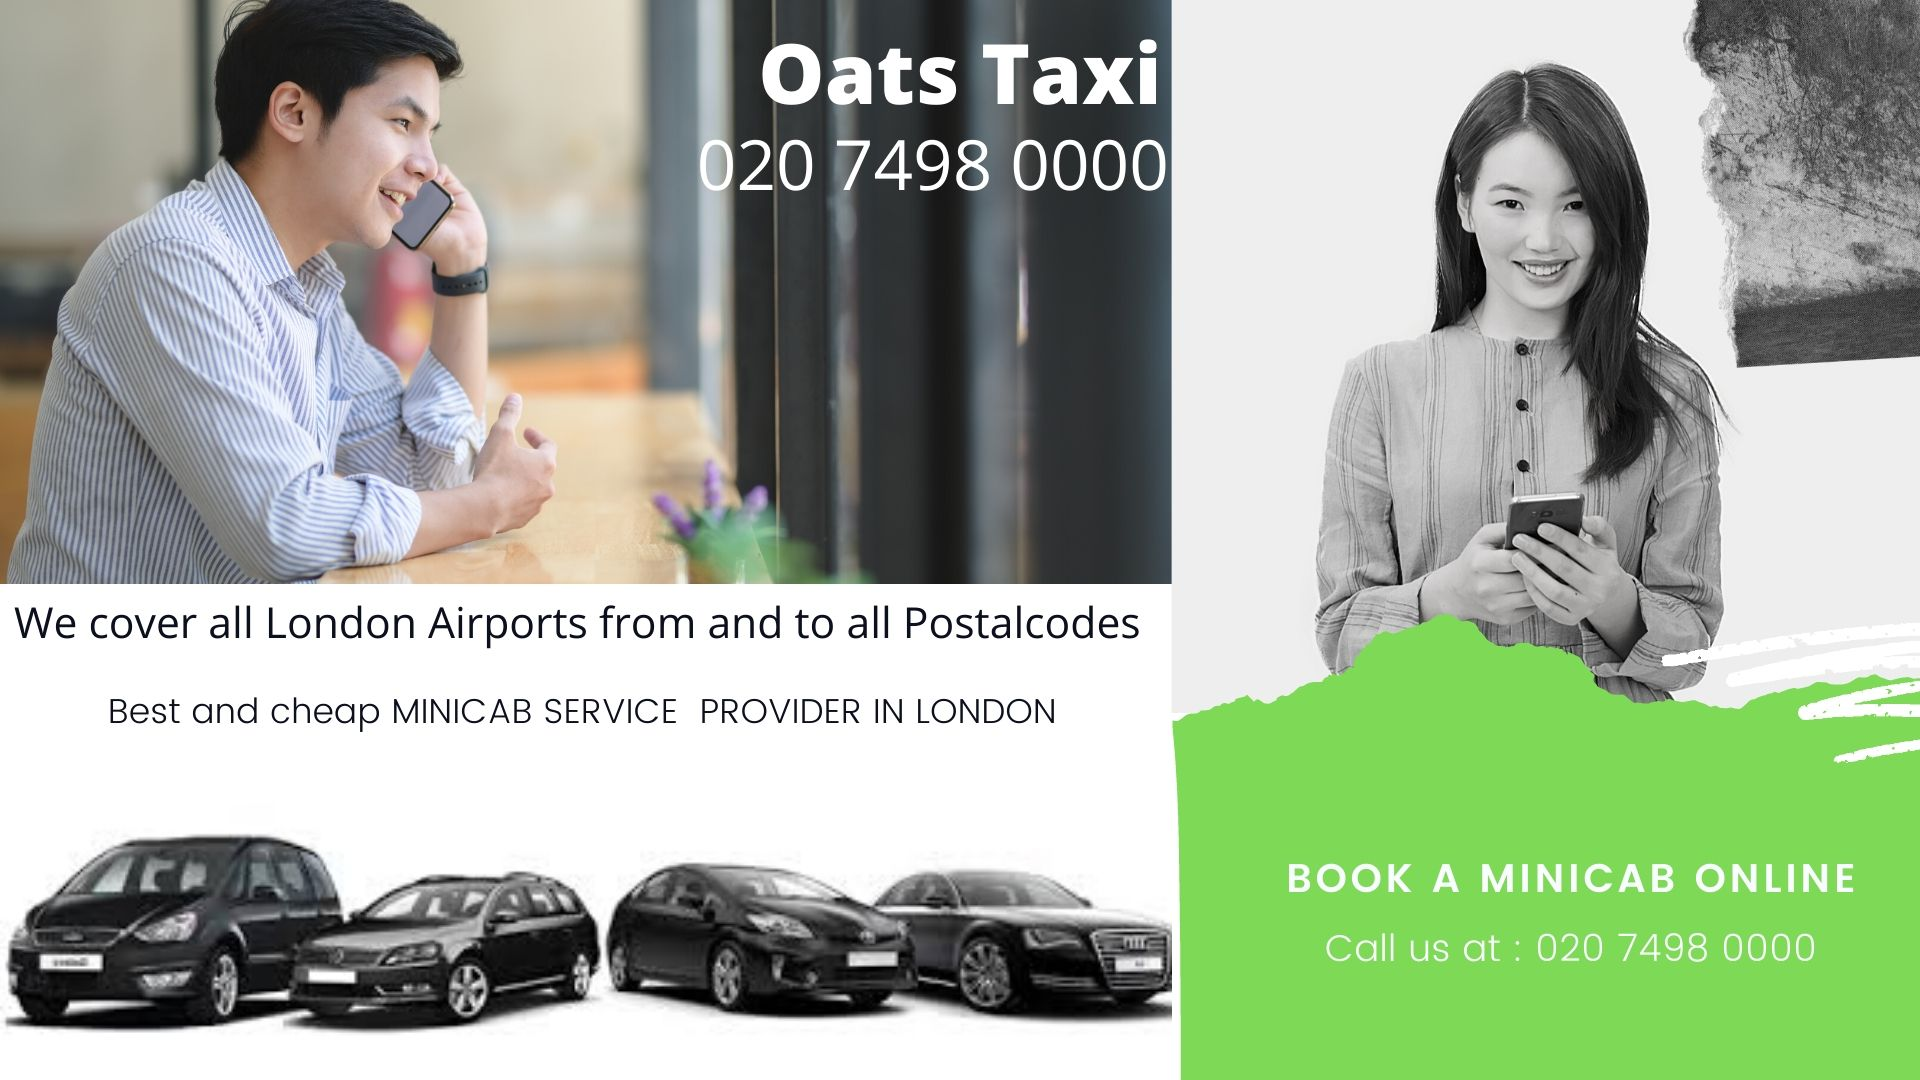 Minicab Office Near BATTERSEA CHURCH ROAD, Battersea SW11, Minicab From Battersea SW11 To Gatwick Airport